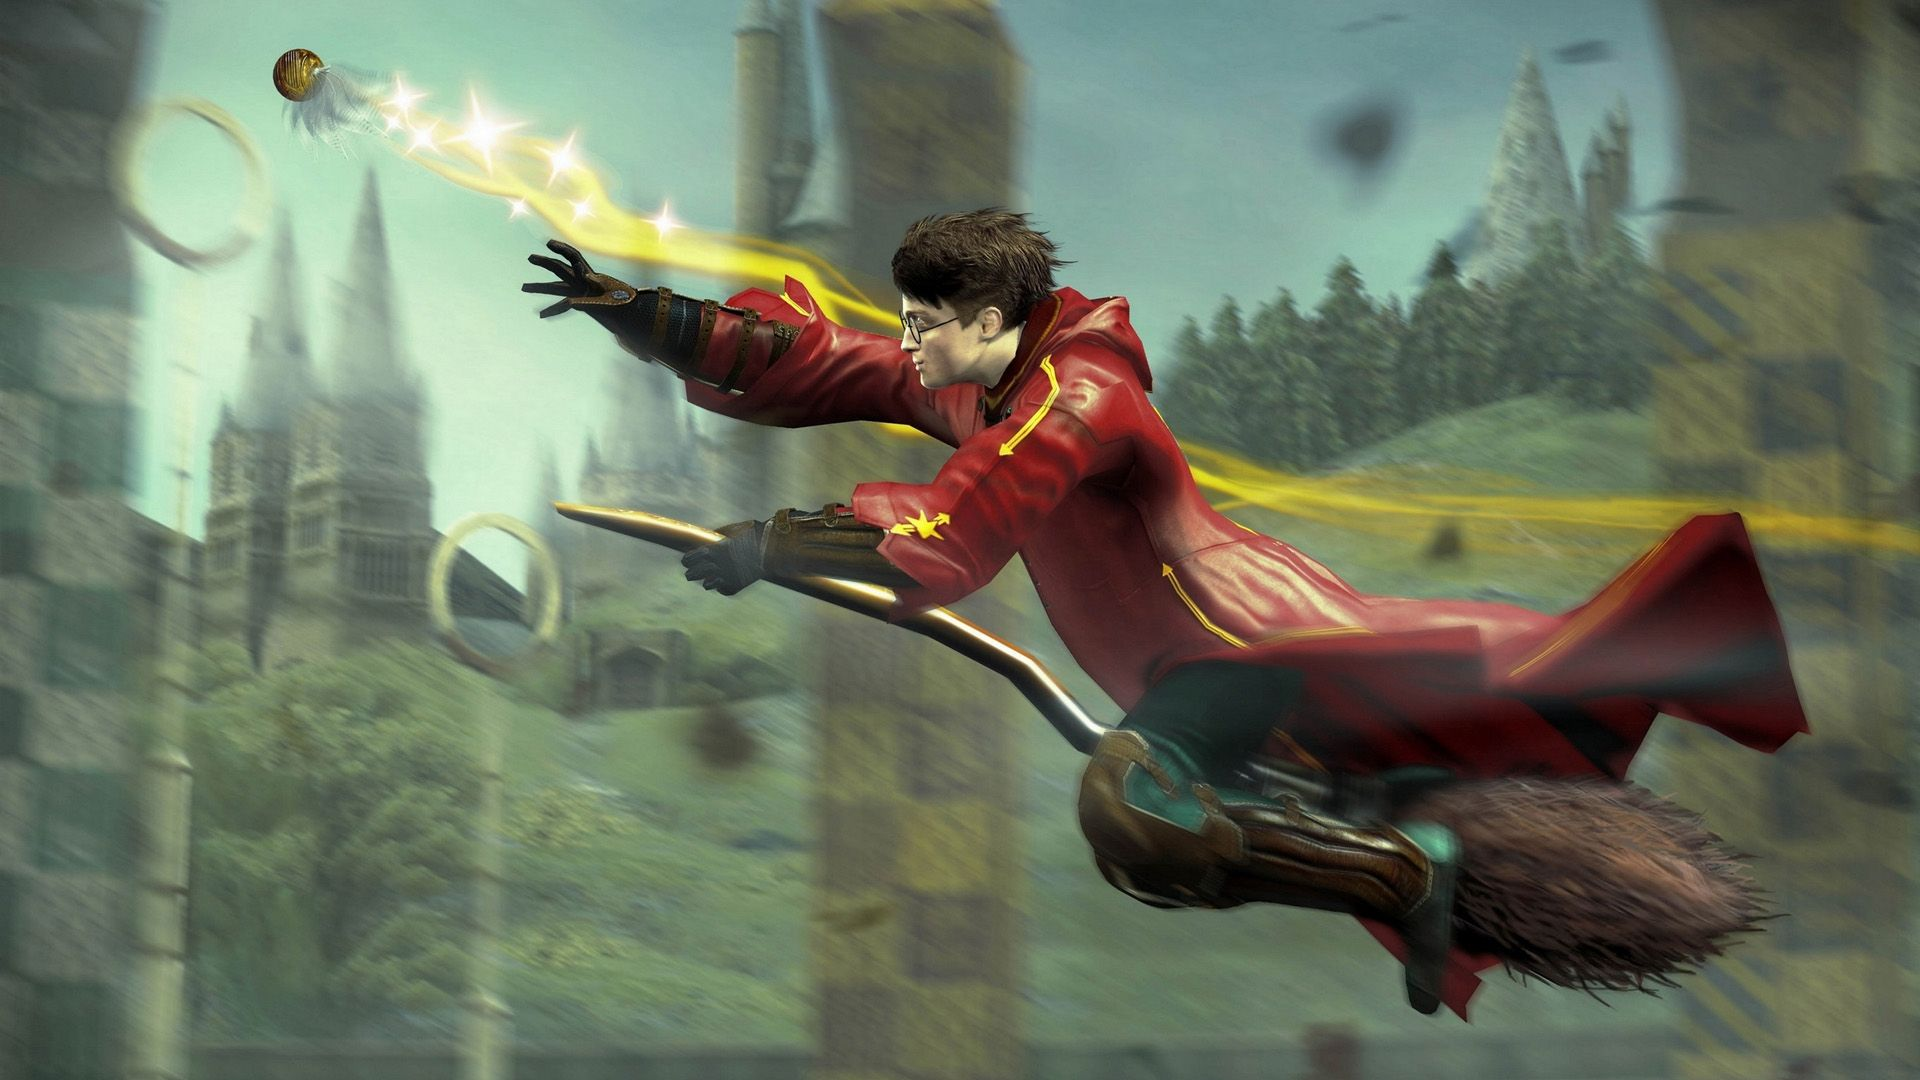 Quidditch Wallpapers Top Free Quidditch Backgrounds Wallpaperaccess